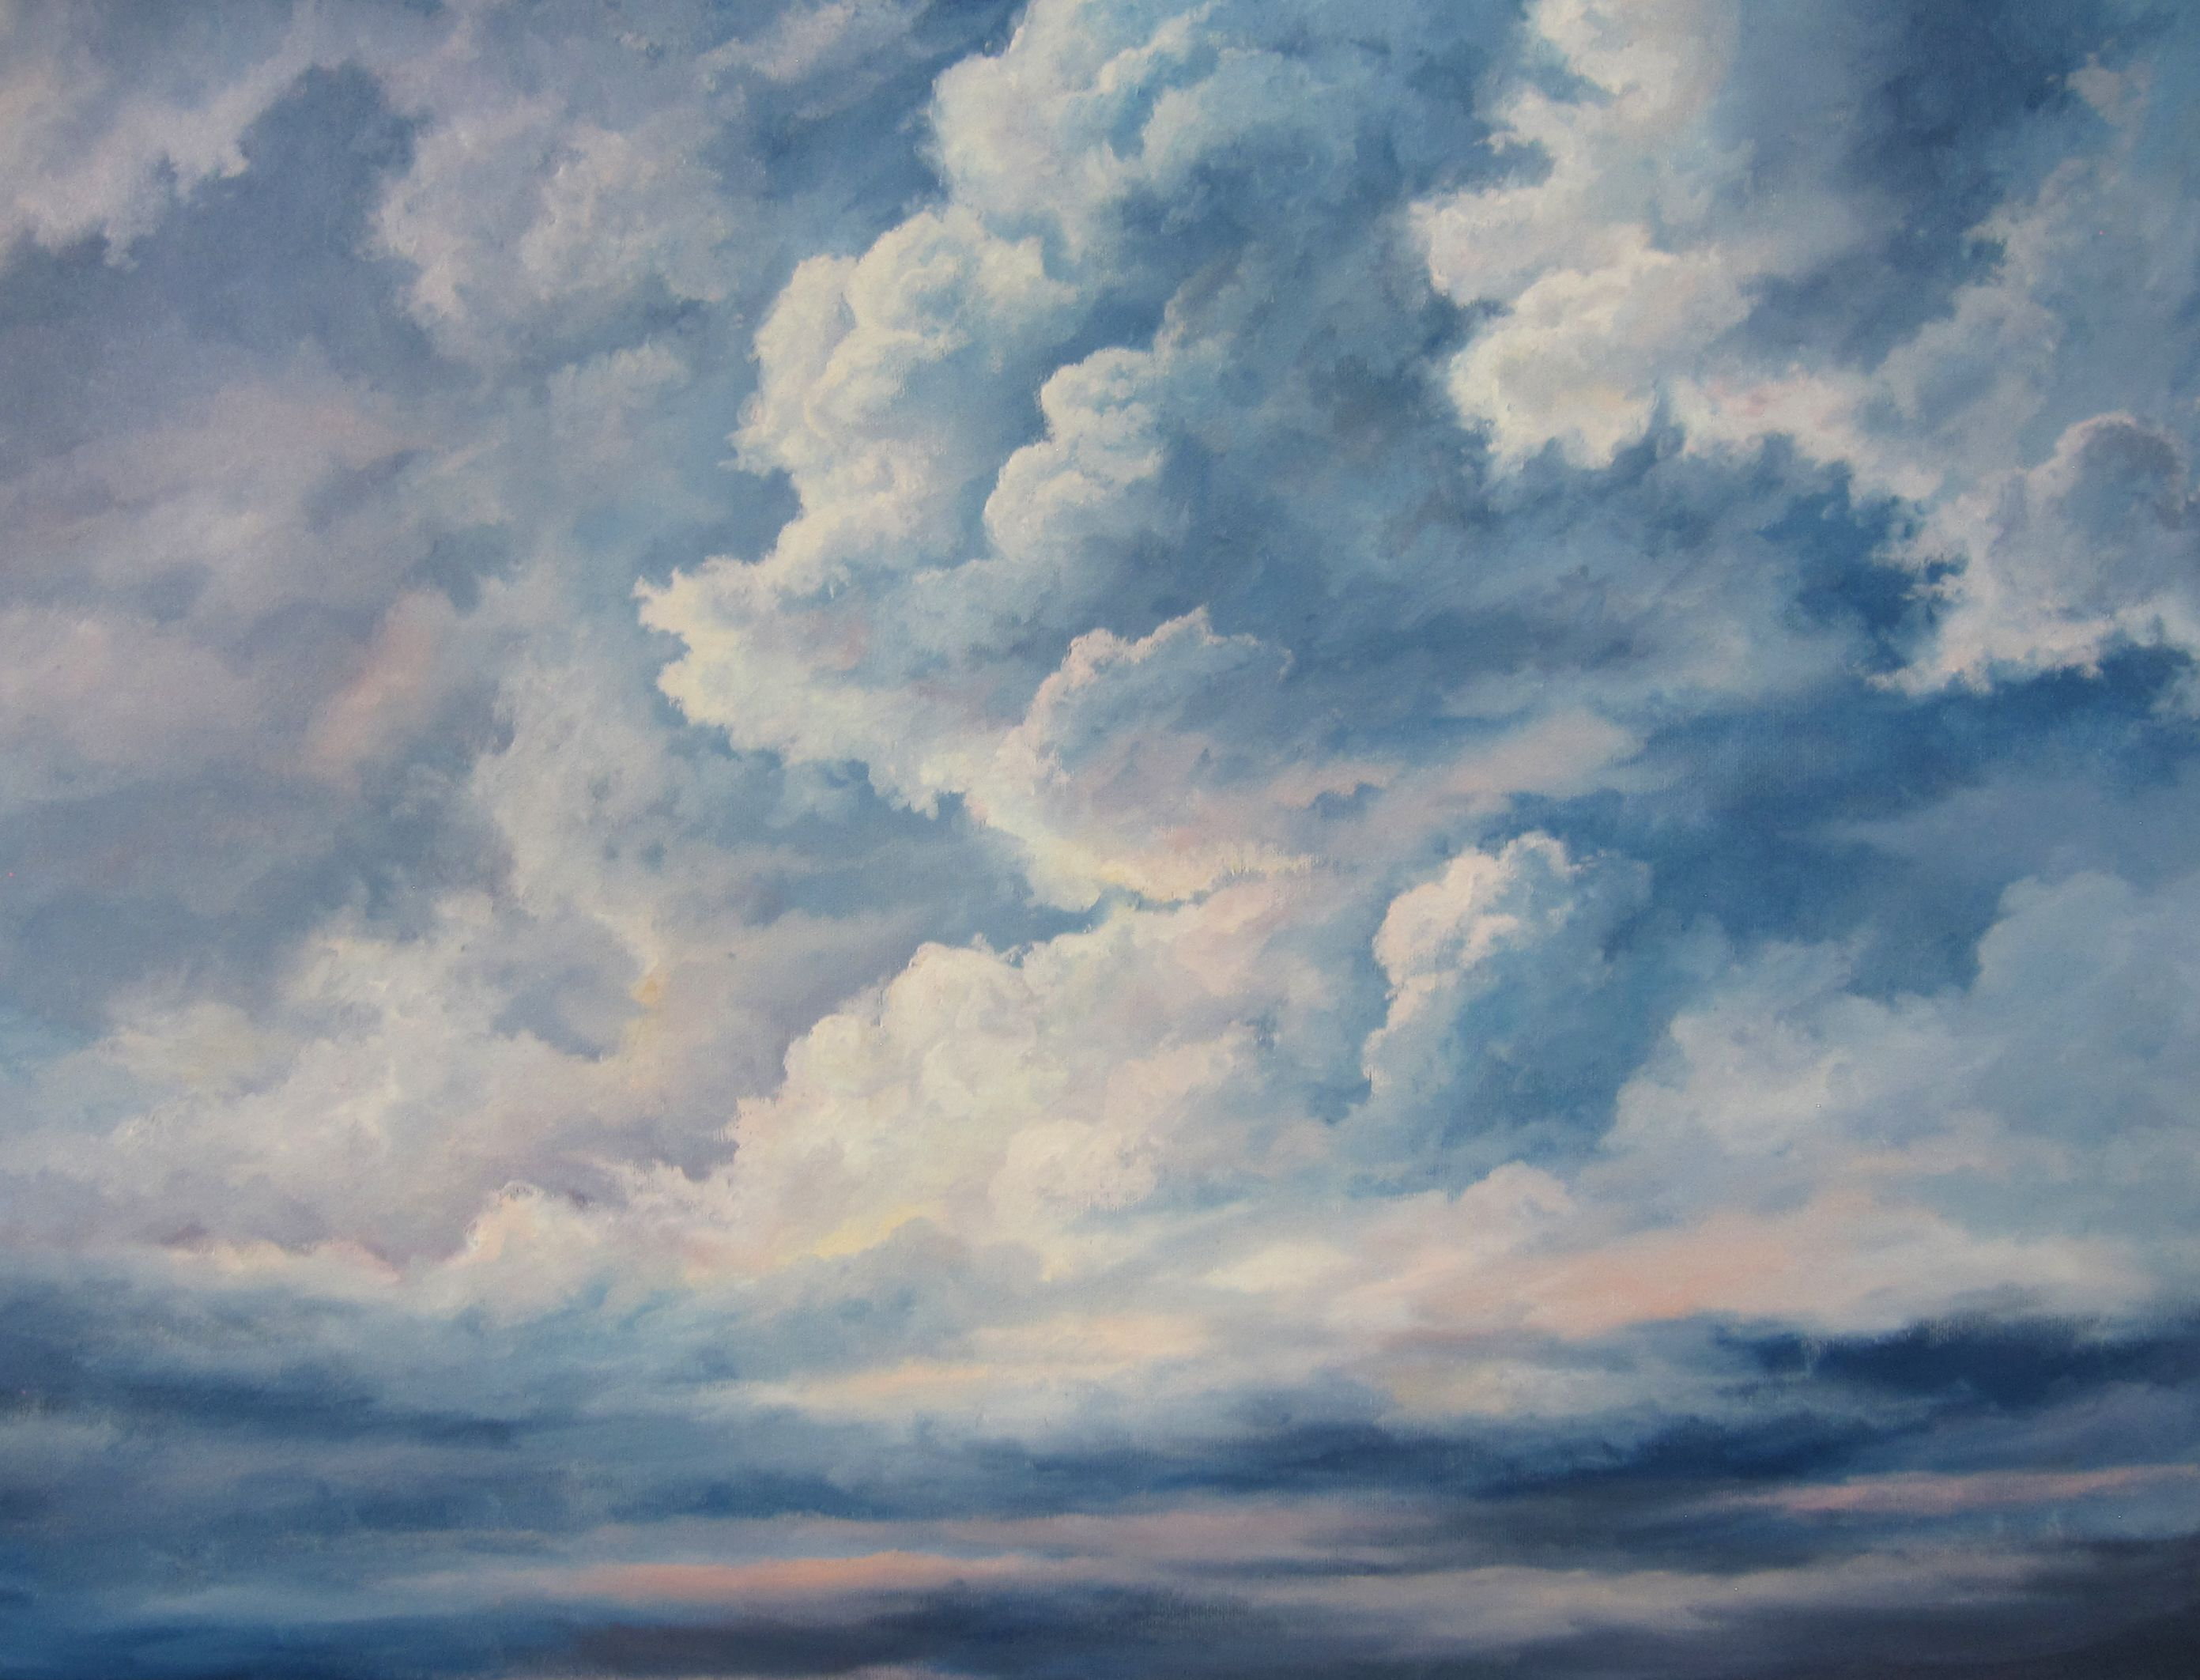 A Cloudy Sky Oil Painting By Kevin Hill Watch Short Oil Painting Lessons On Youtube Kevinoilpainting Sky Painting Oil Painting Lessons Oil Painting Flowers